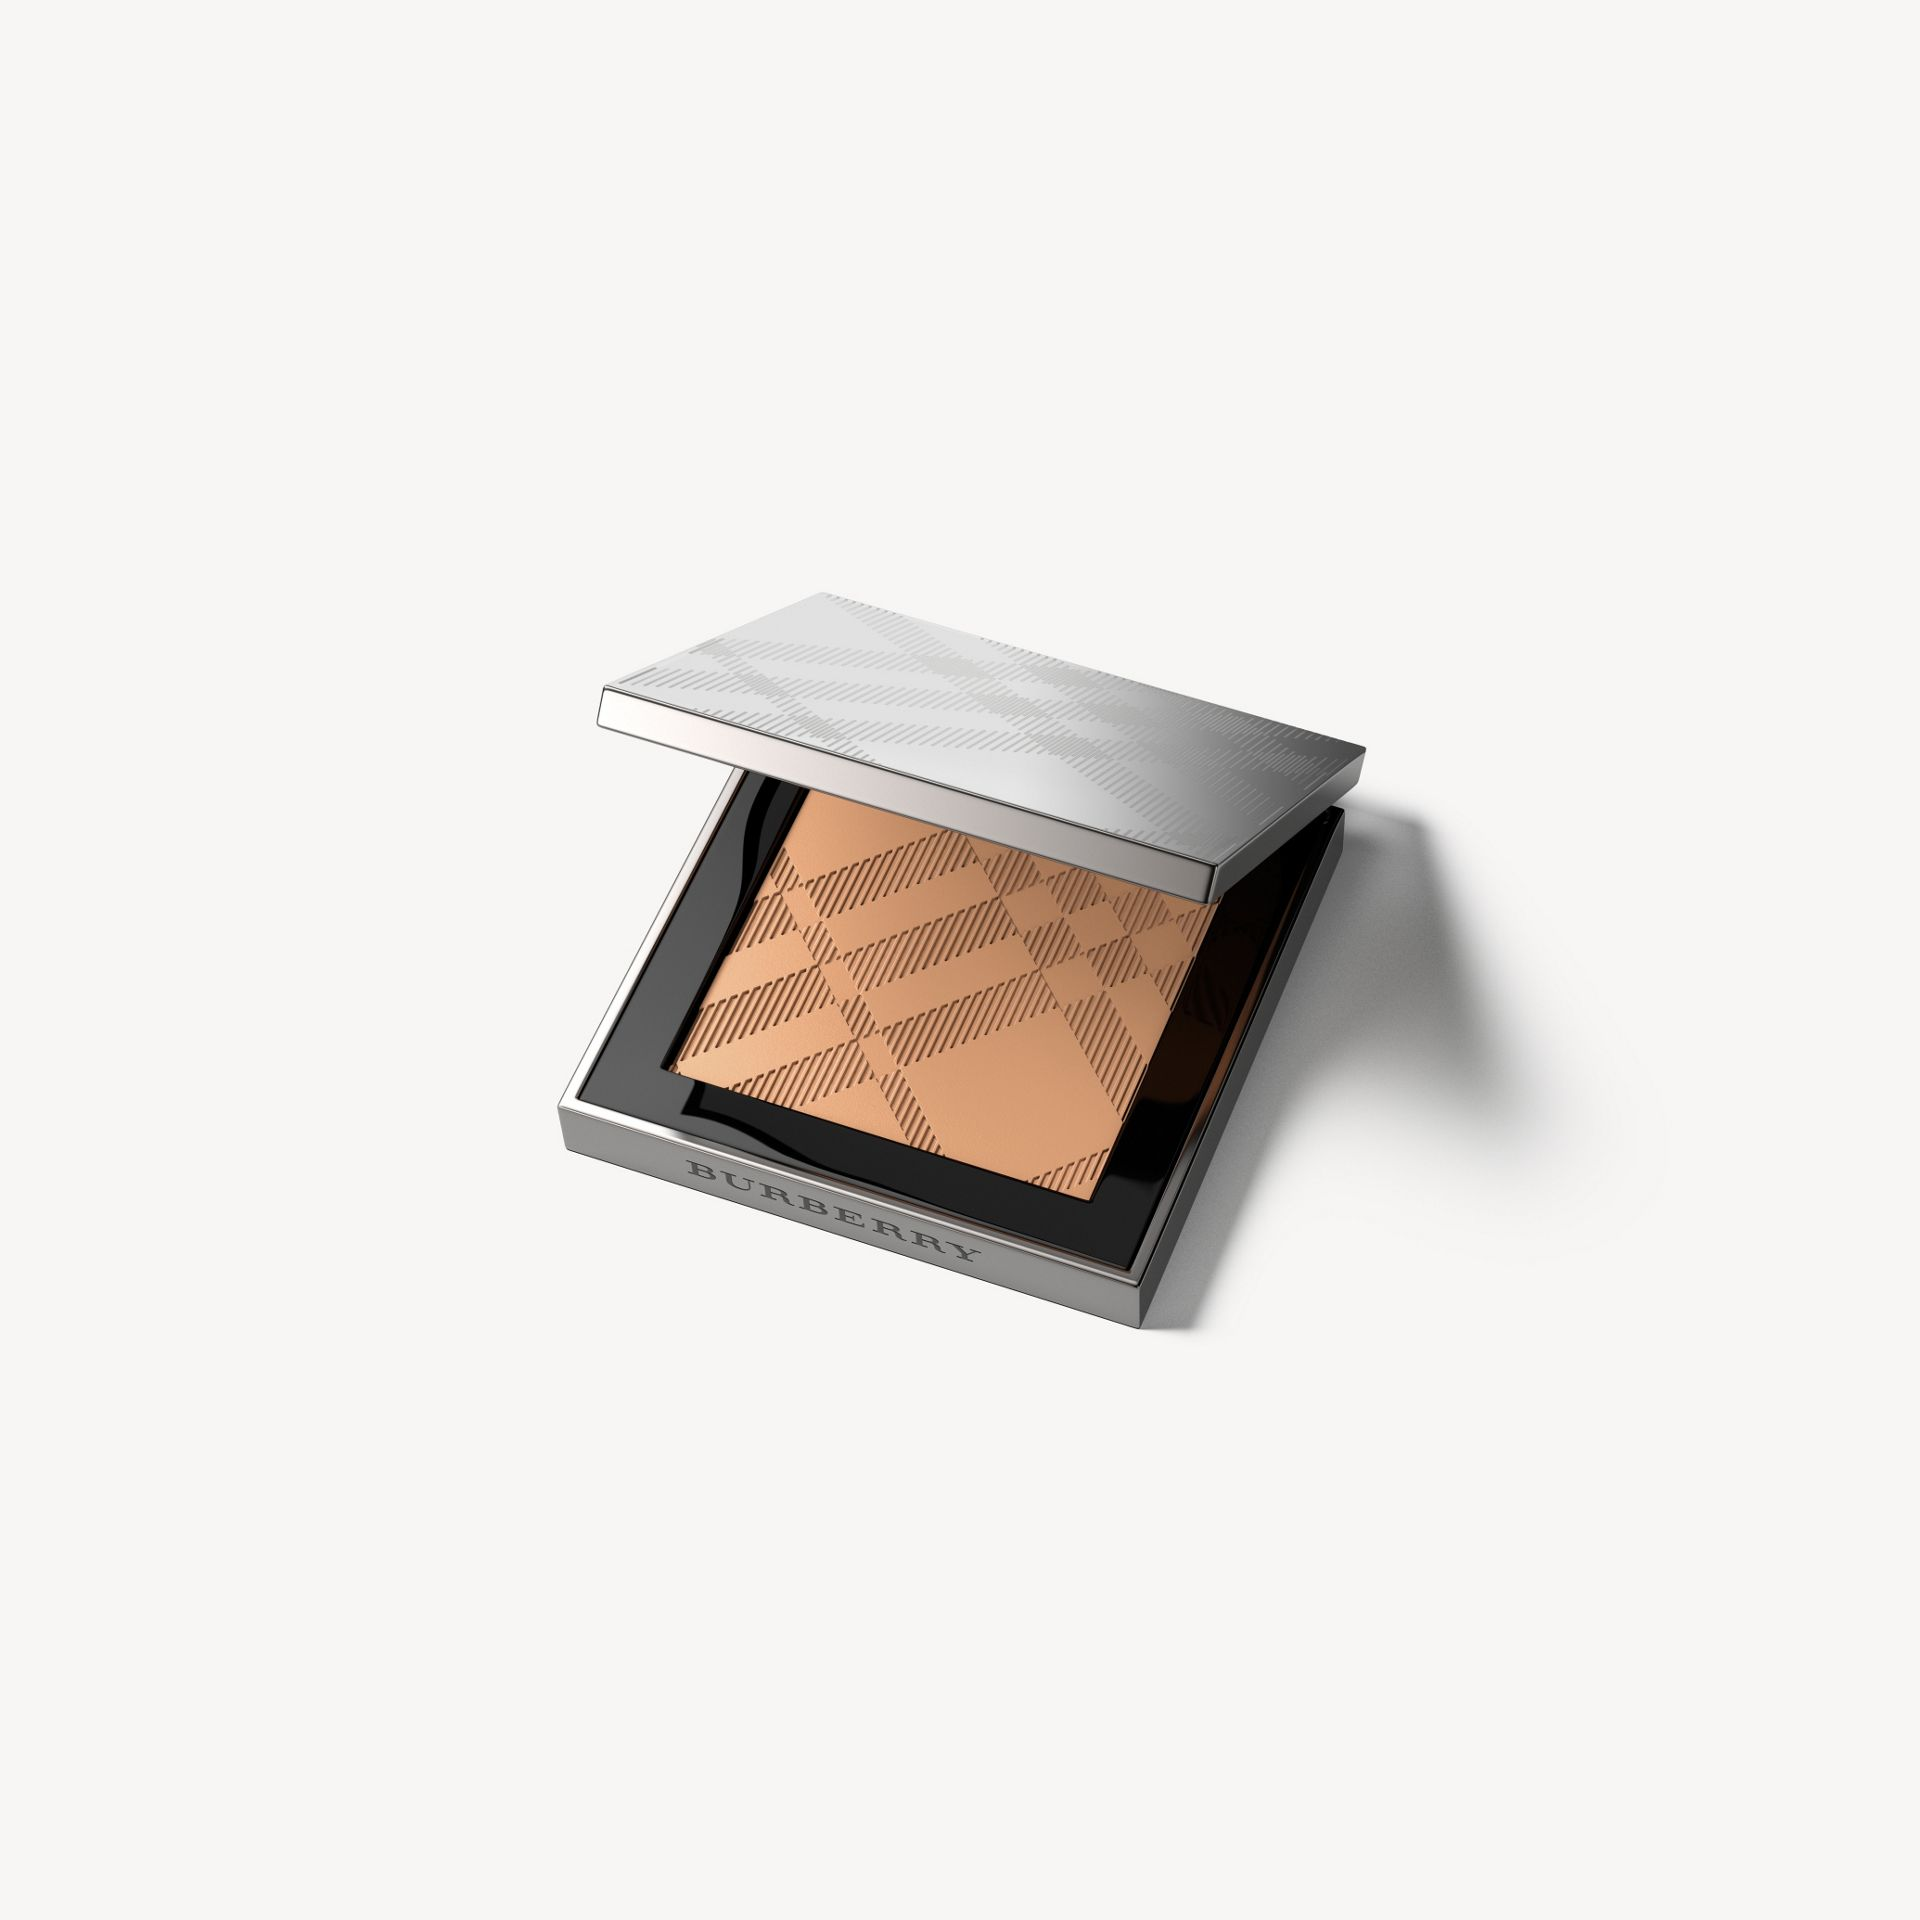 Warm honey 38 Nude Powder - Warm Honey No.38 - immagine della galleria 1